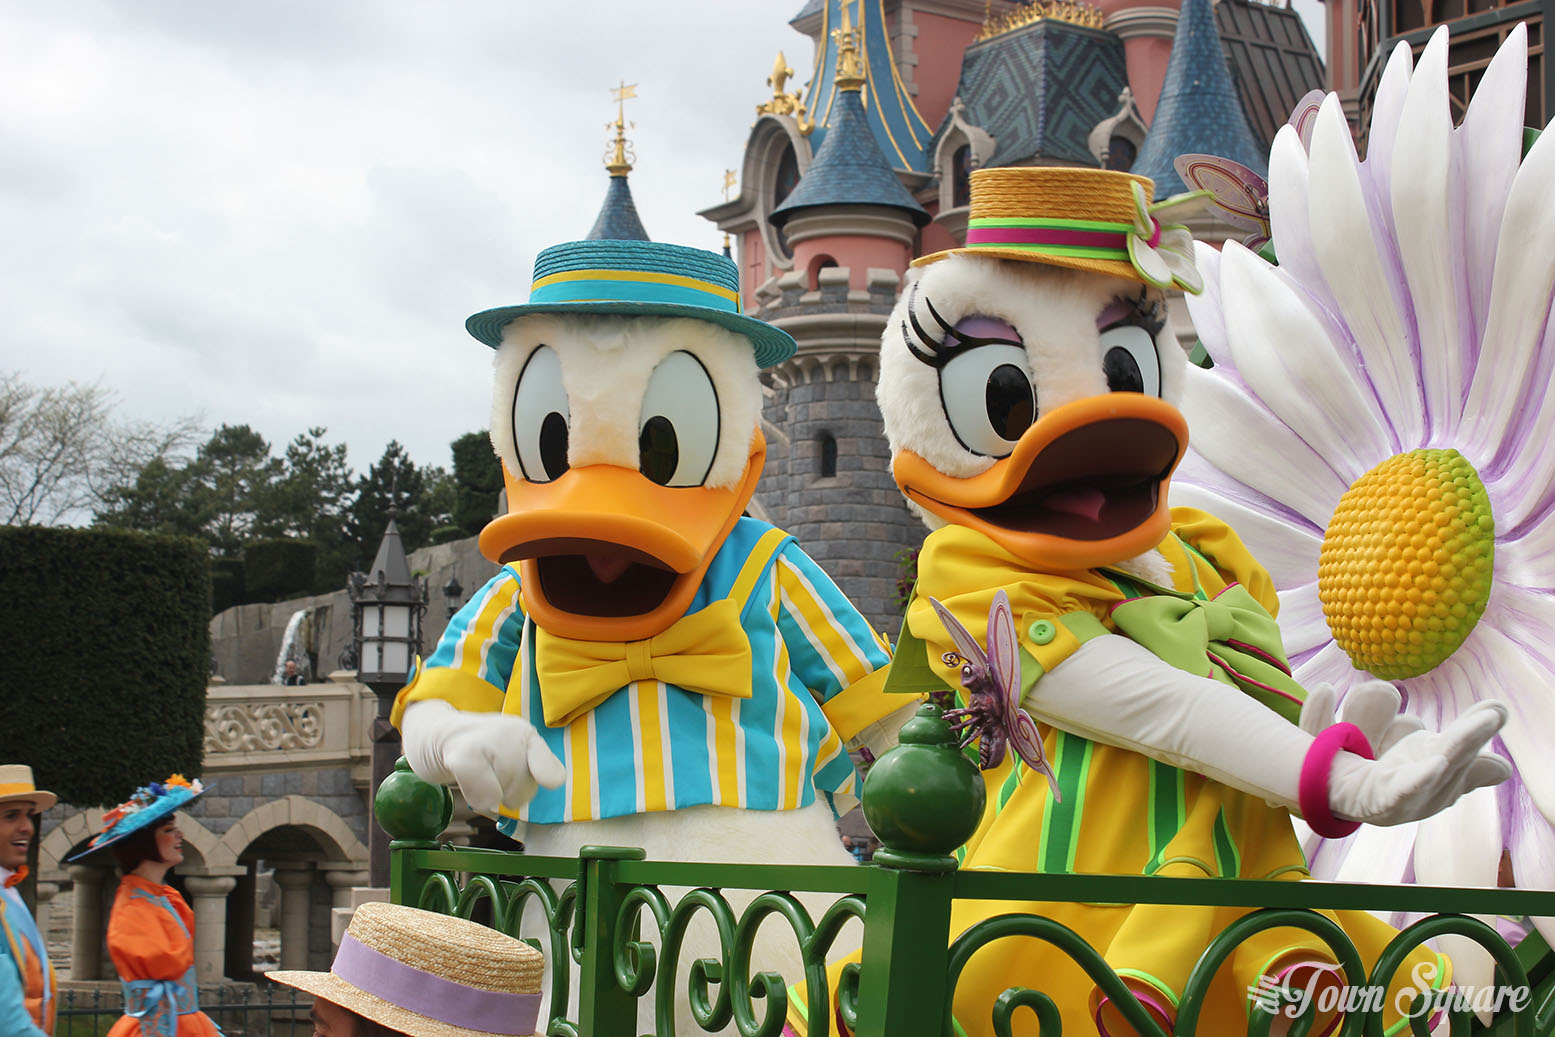 Swing into Spring at Disneyland Paris